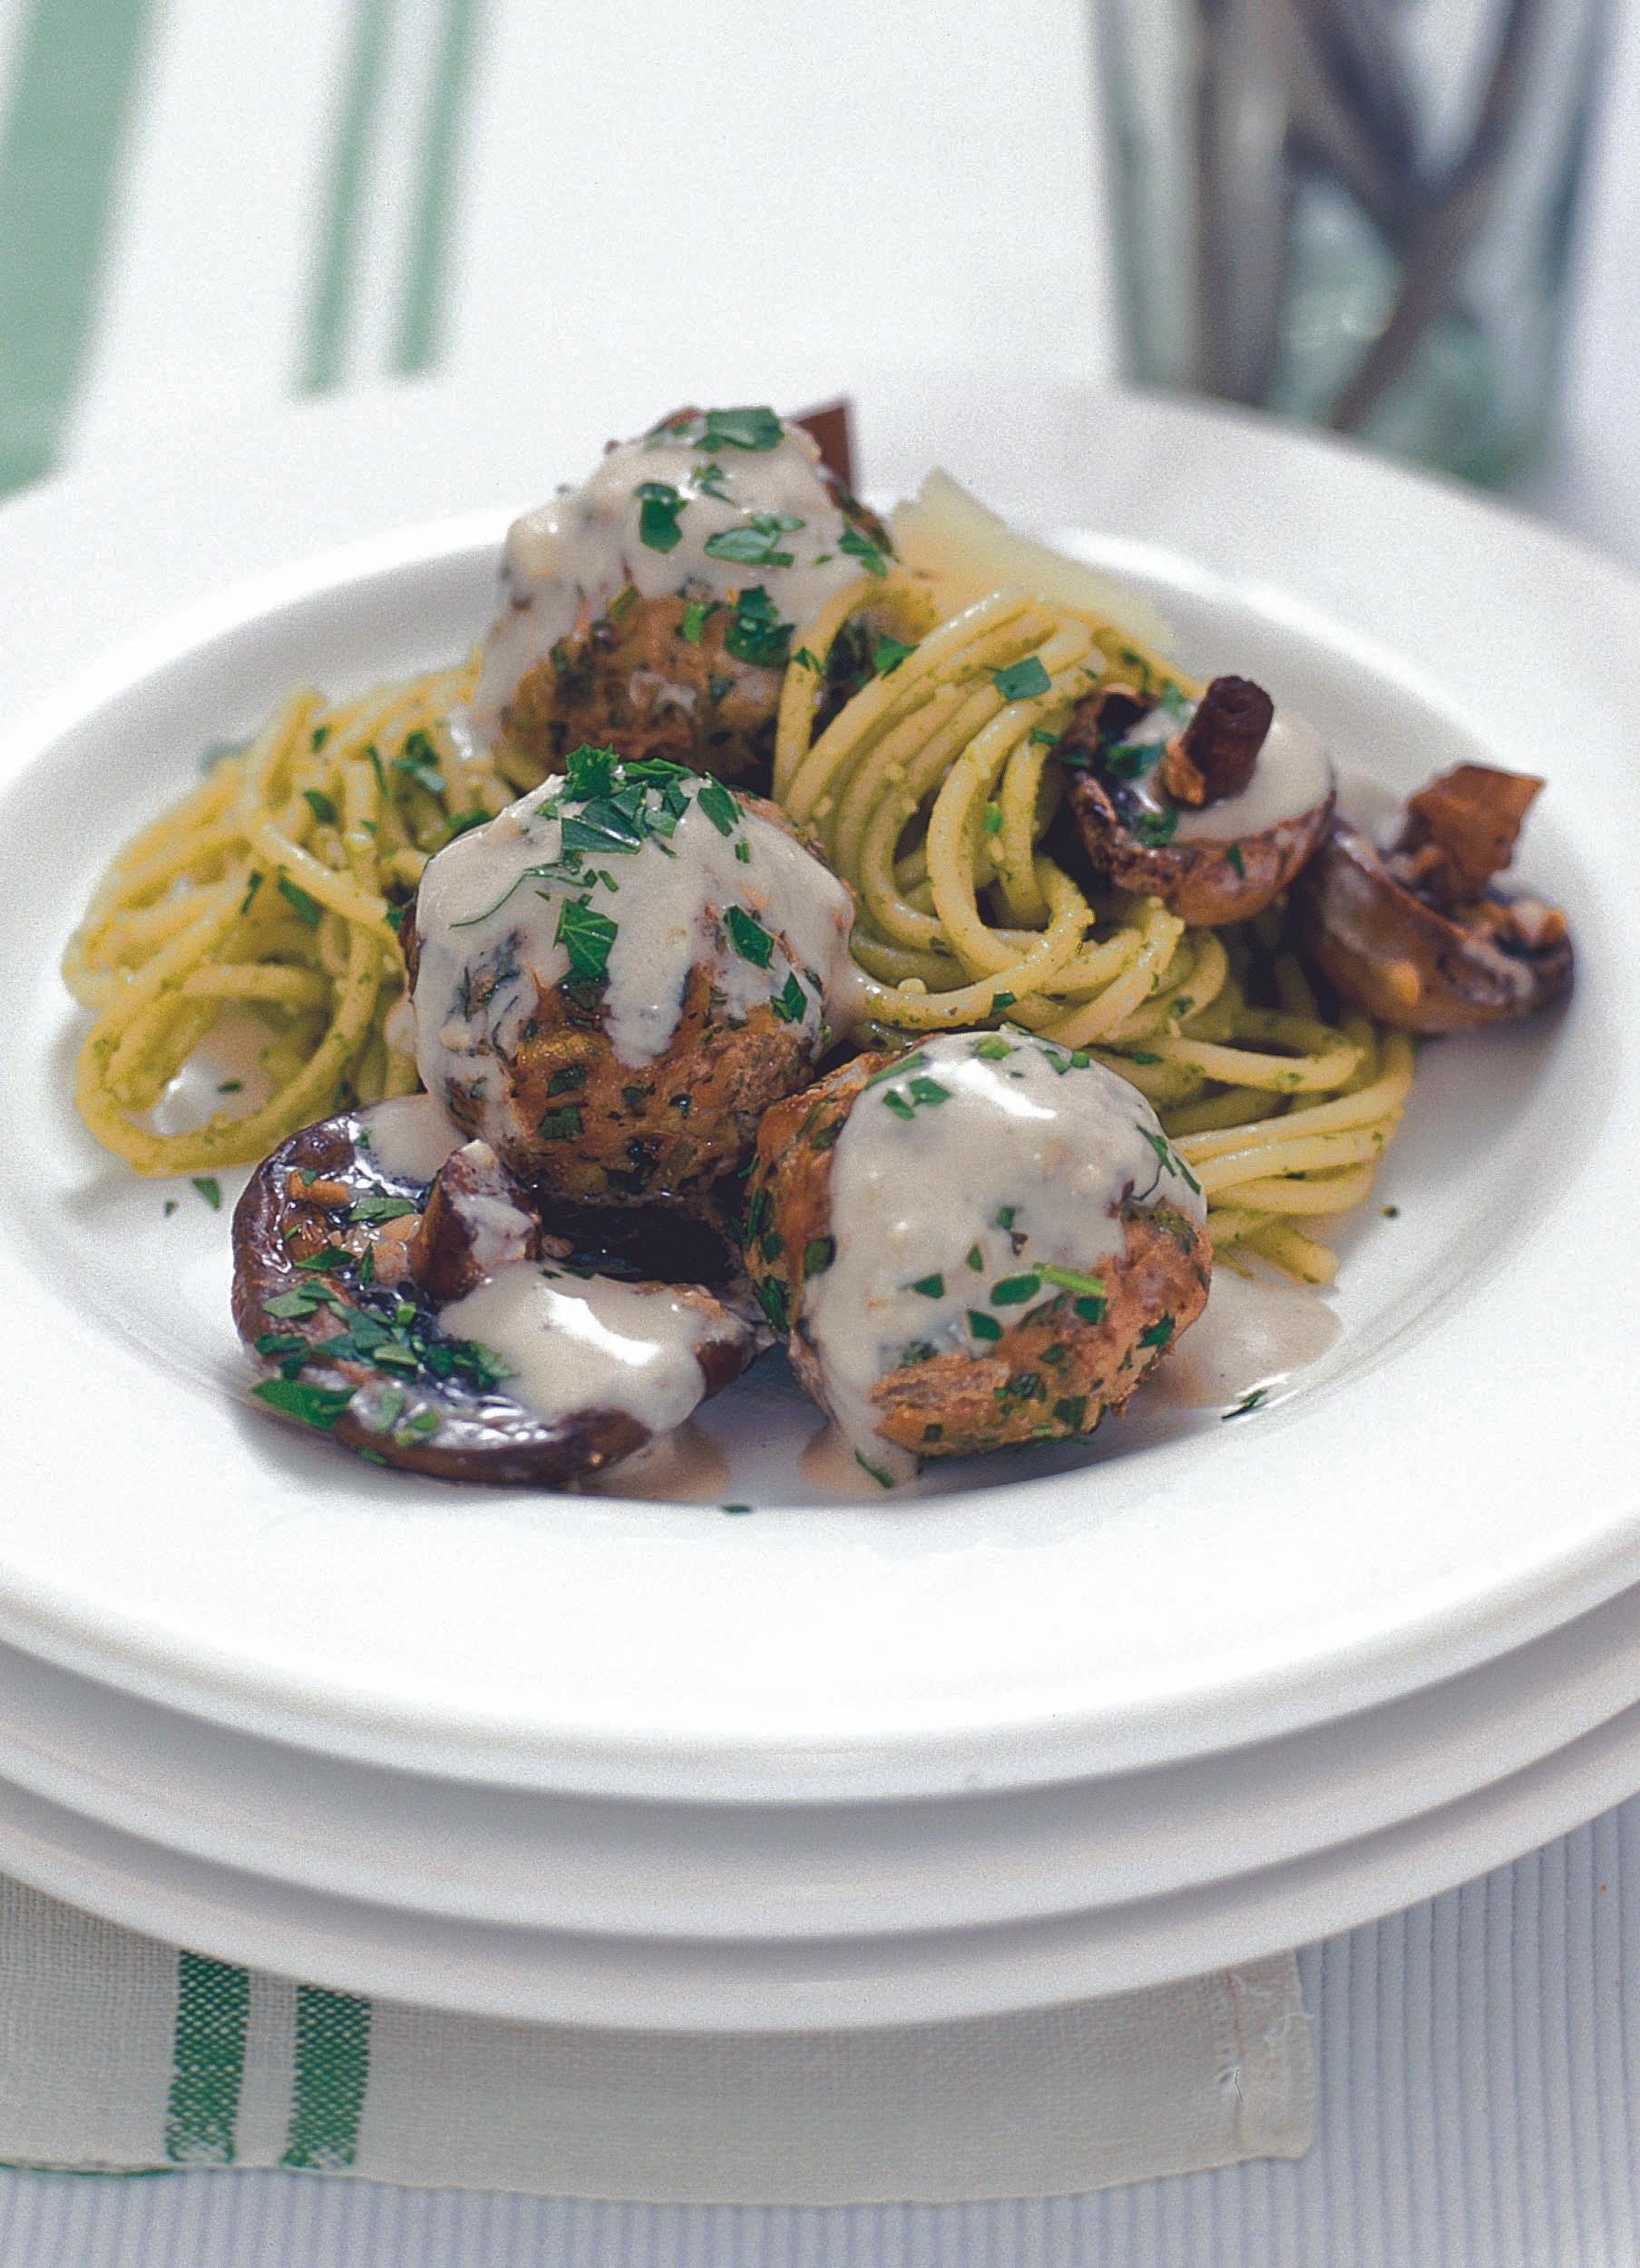 Roasted veal meatballs with garlic mushrooms and parmesan cream